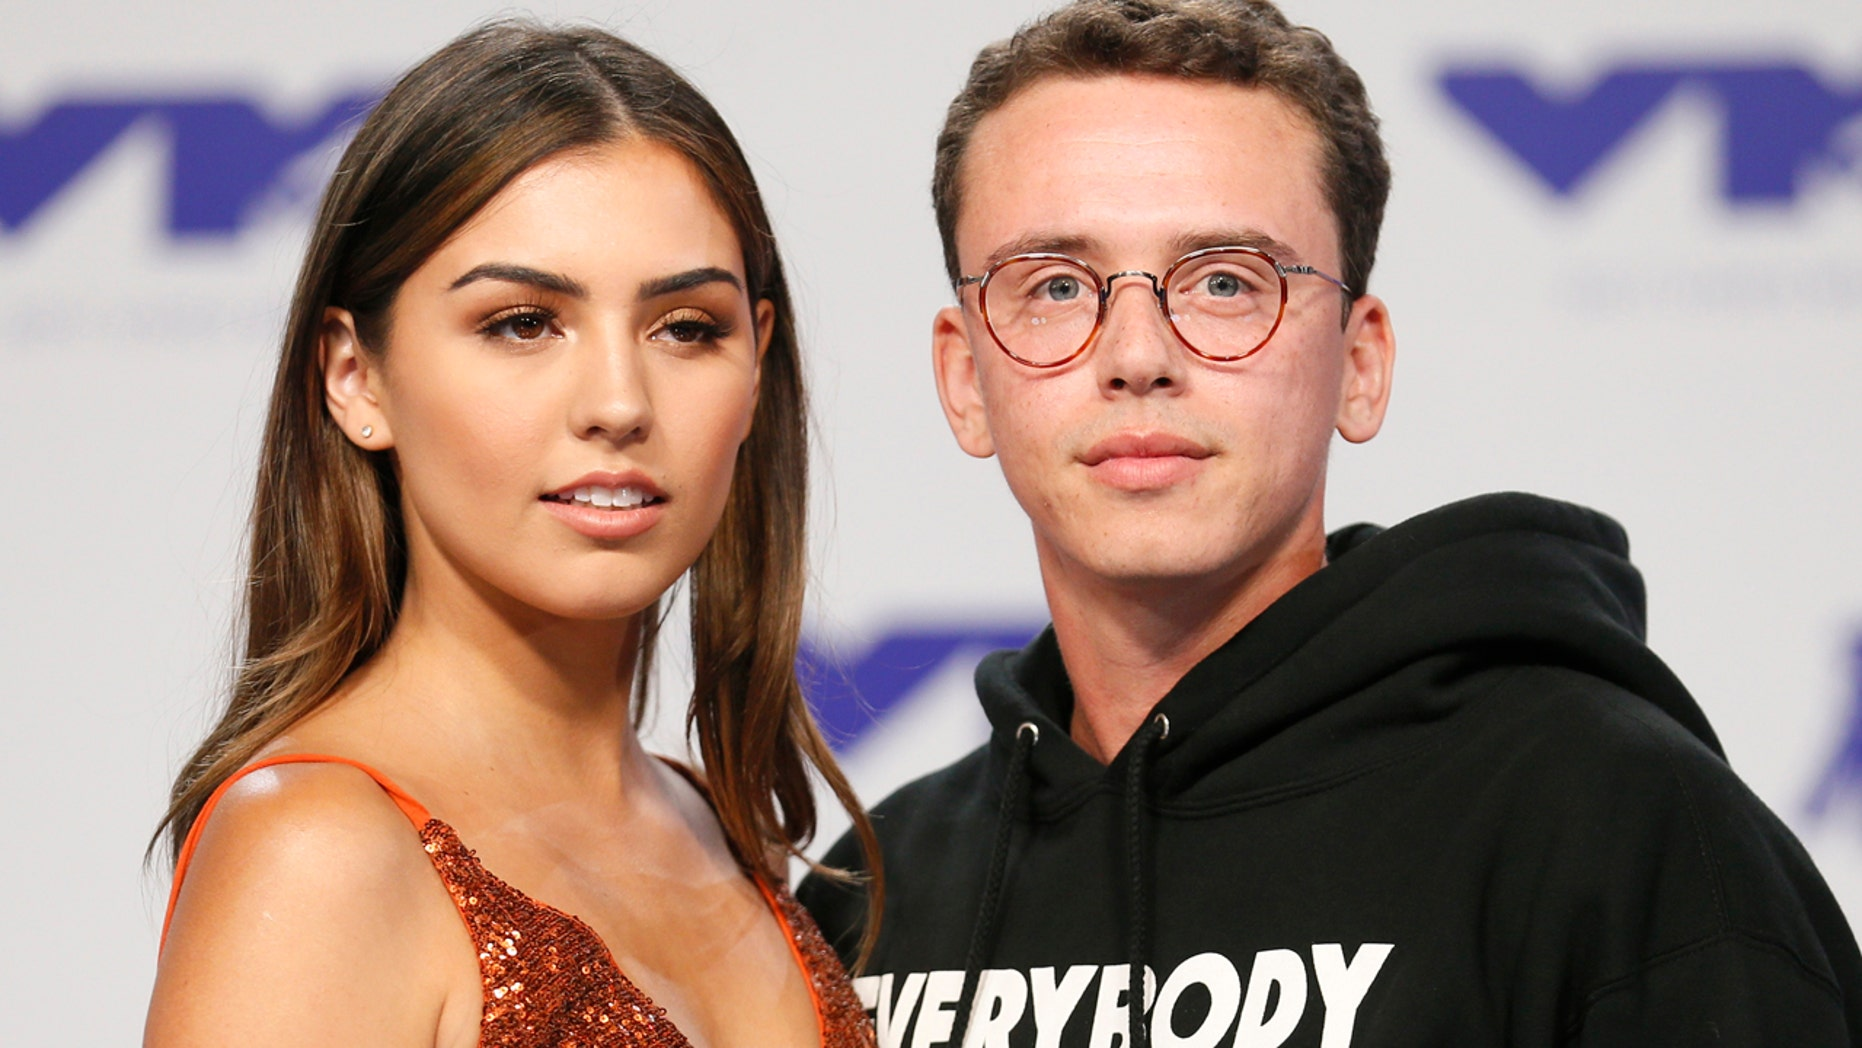 Rapper Logic and wife, Jessica Andrea, reportedly split after 2 years of marriage.